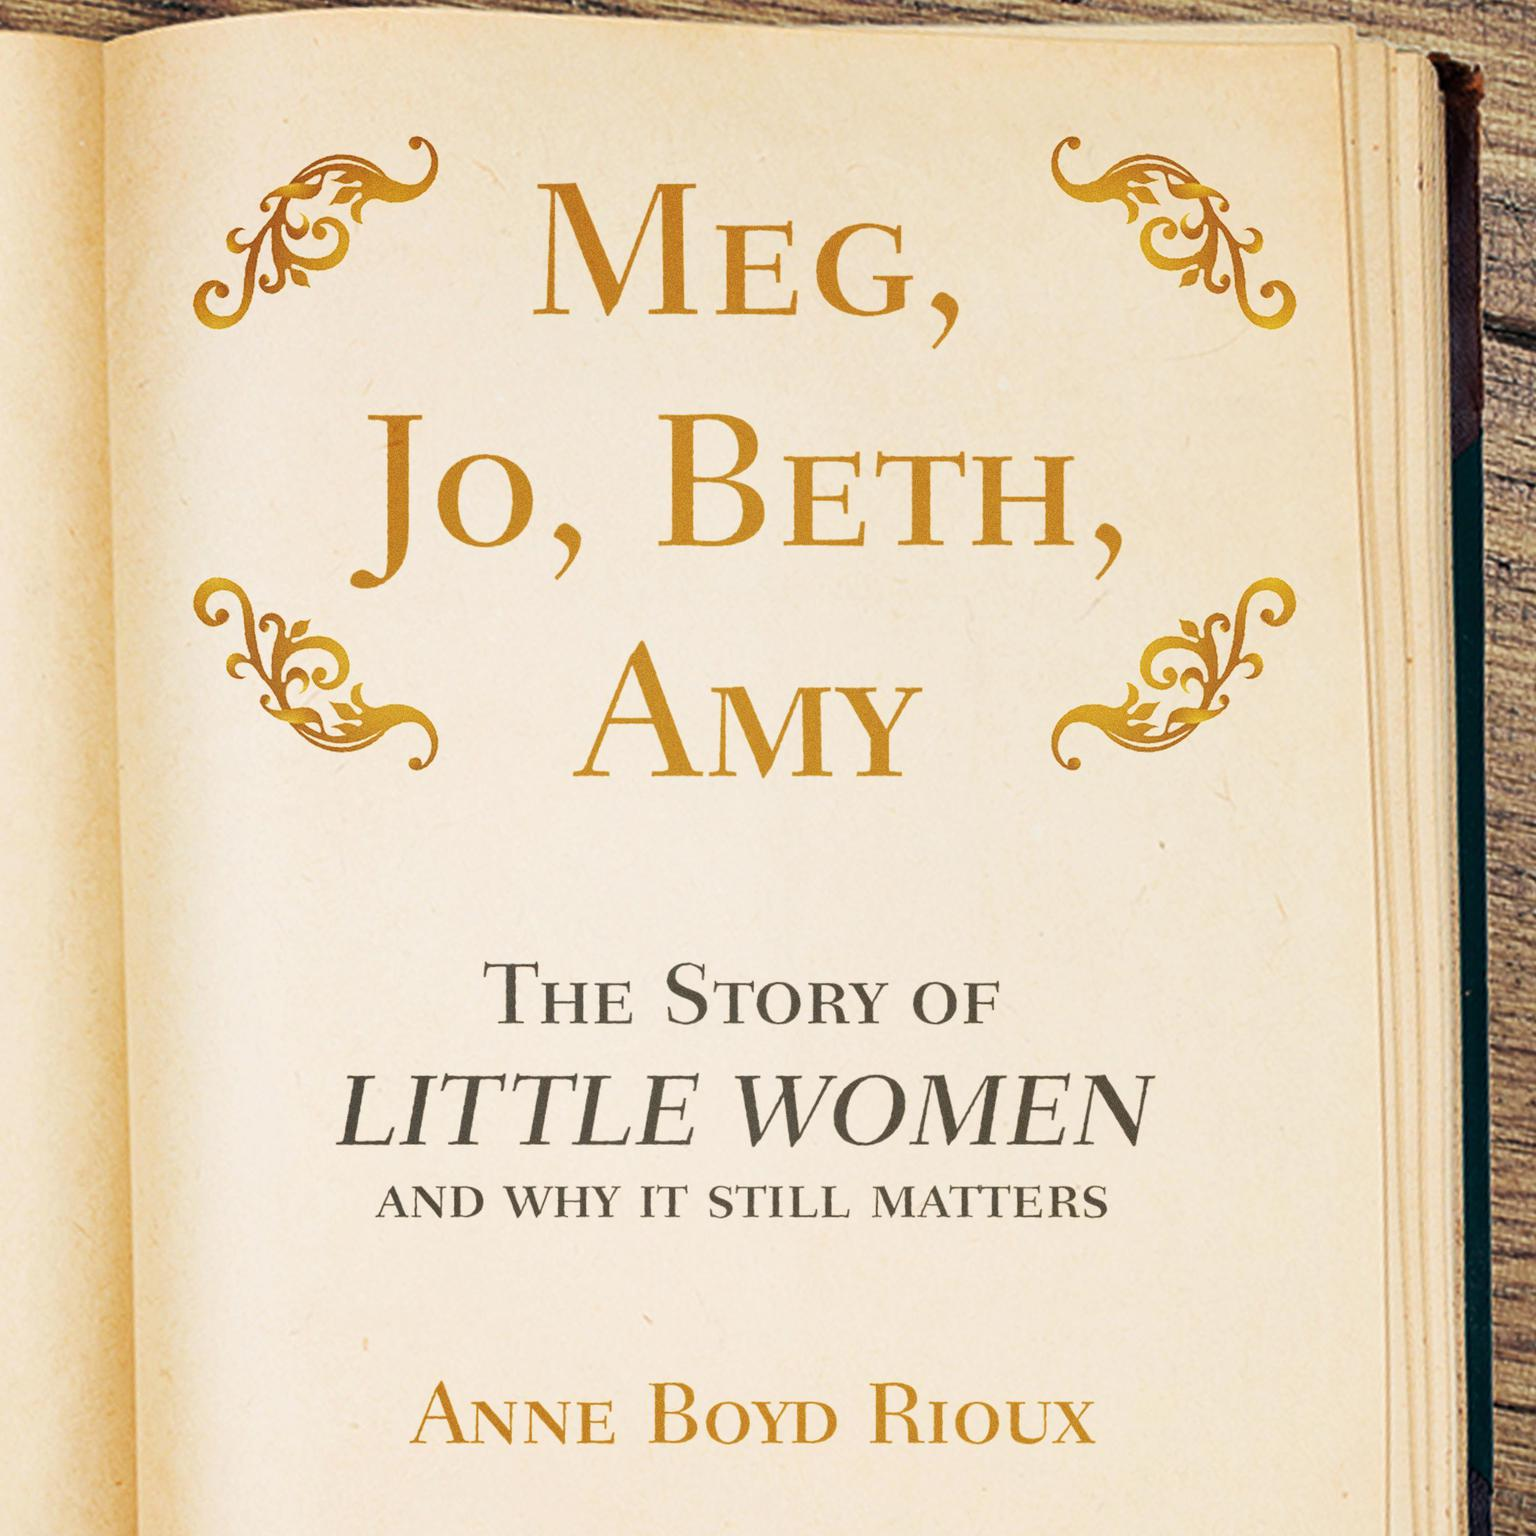 Meg, Jo, Beth, Amy: The Story of Little Women and Why It Still Matters Audiobook, by Anne Boyd Rioux